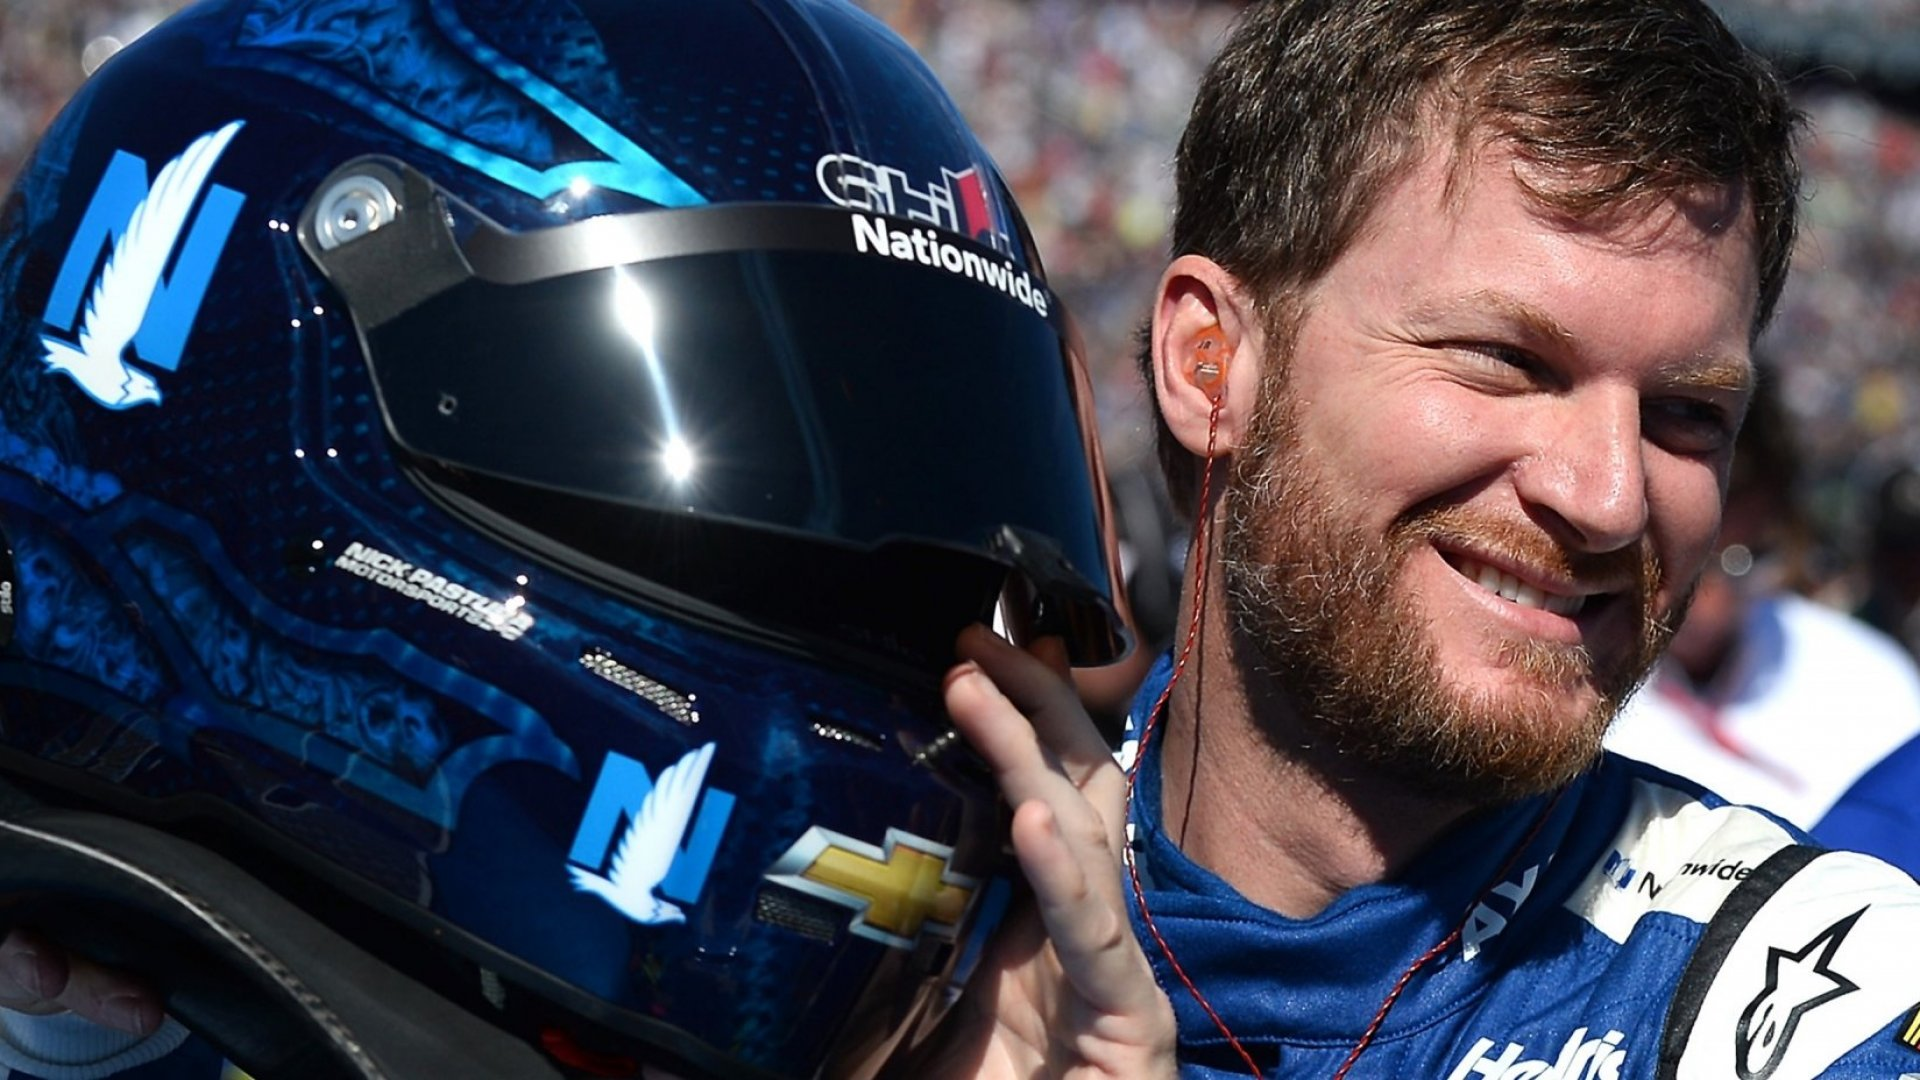 Want to Start a Successful Podcast? Dale Earnhardt Jr. Shares 5 Lessons Learned